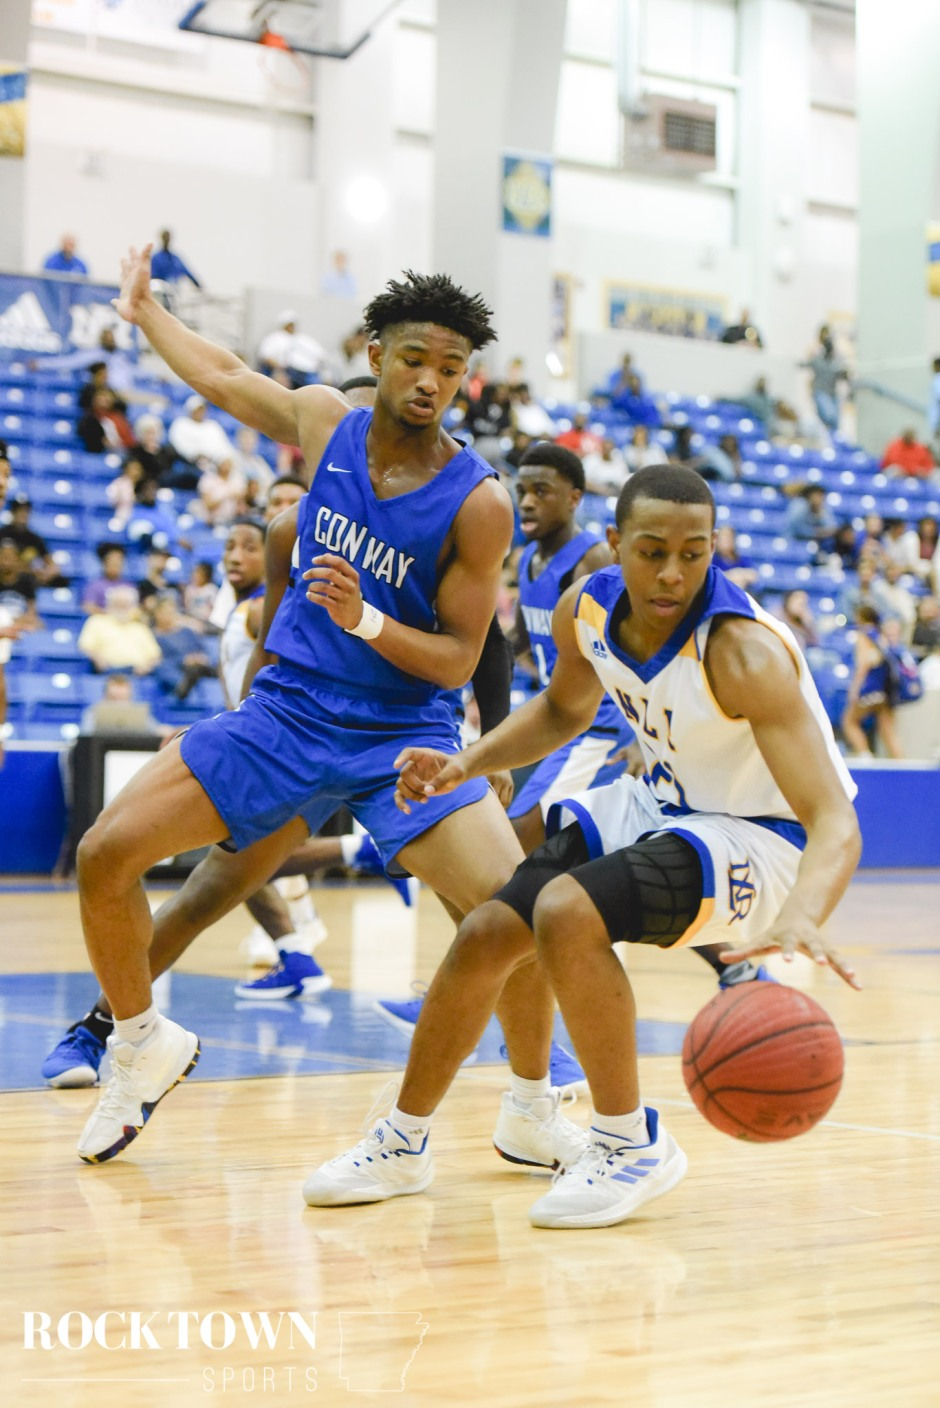 Conway_NLR_bball19(i)-54